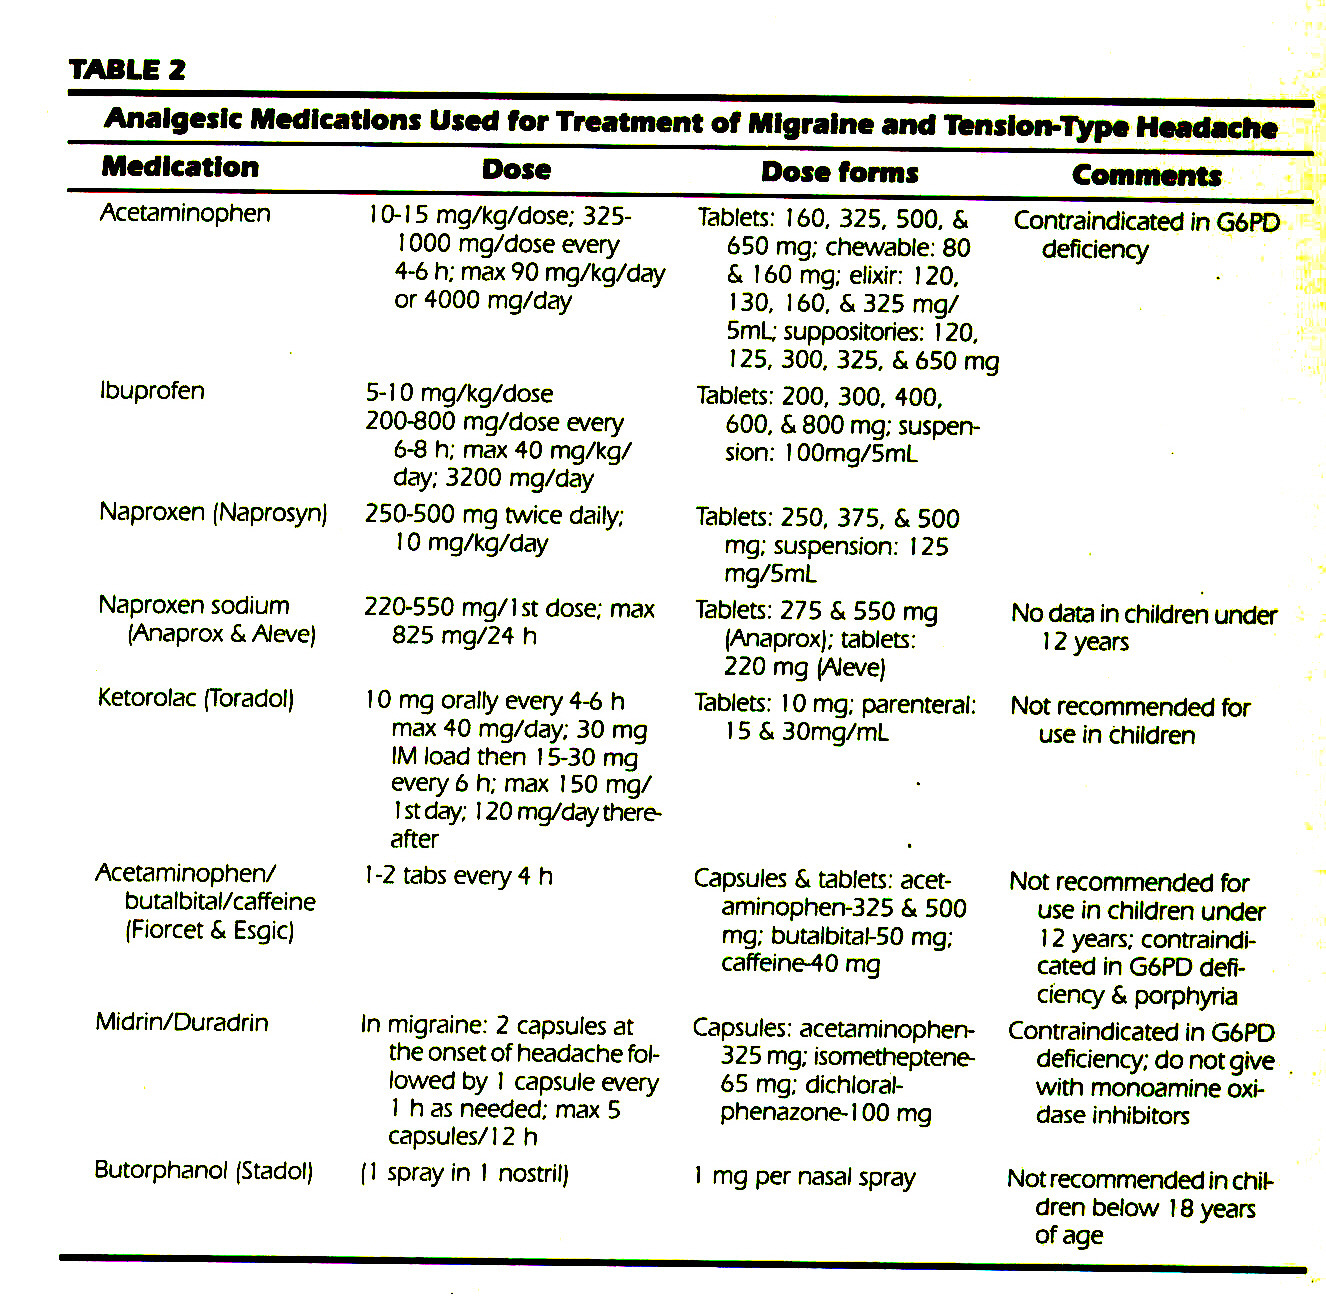 TABLE 2Analgesic Medications Used for Treatment of Migraine and Tension-Type Headache